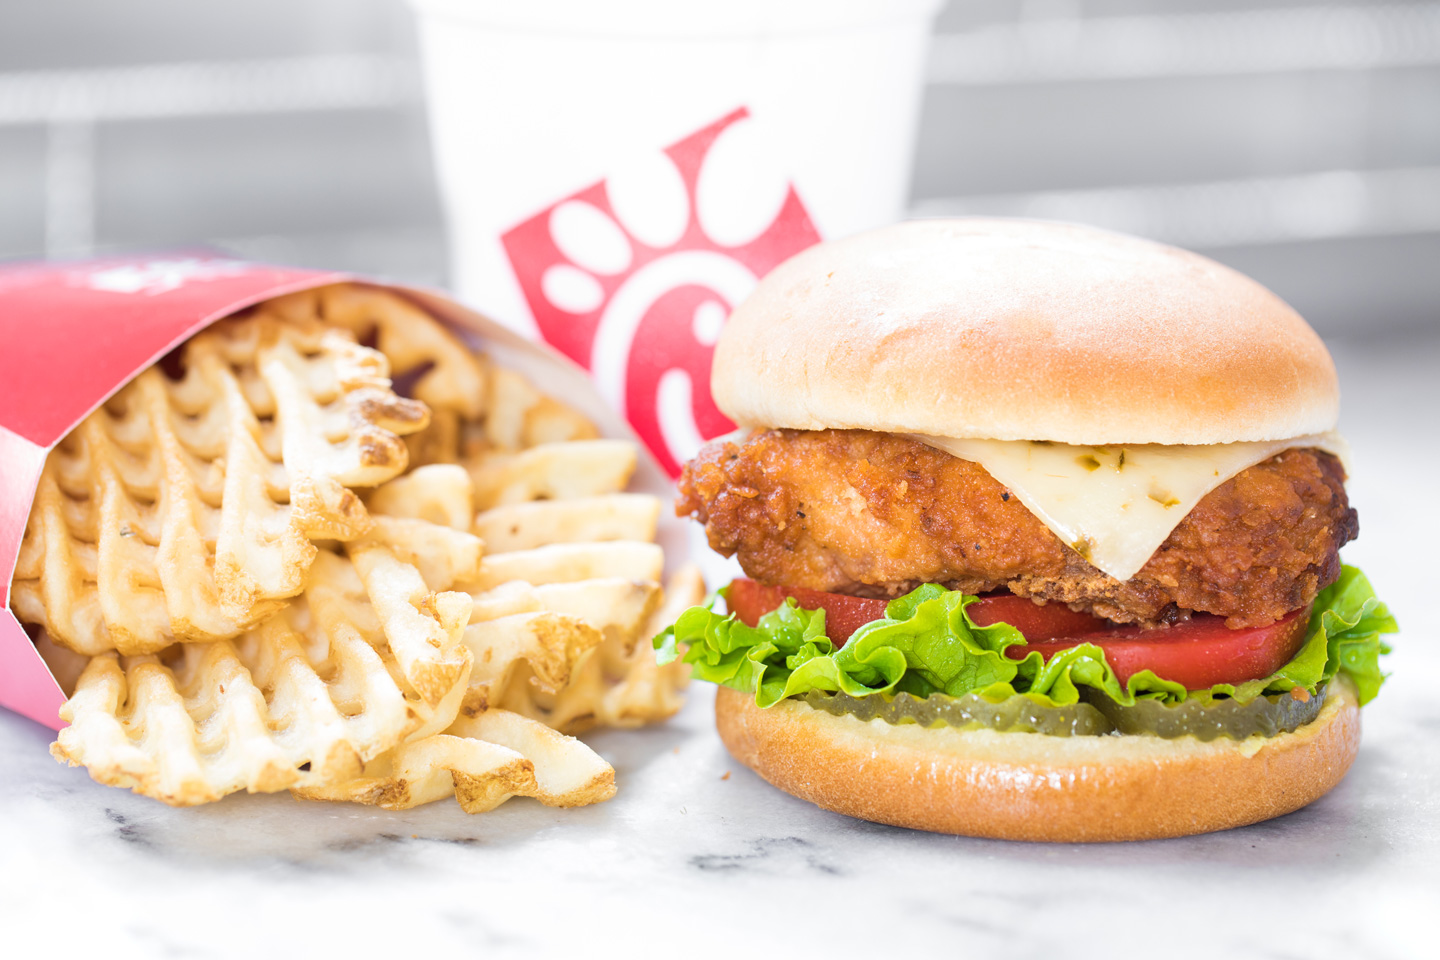 chic fil a After 20 years, chick-fil-a is ending its popular cow calendar which offered 12 months of free food.